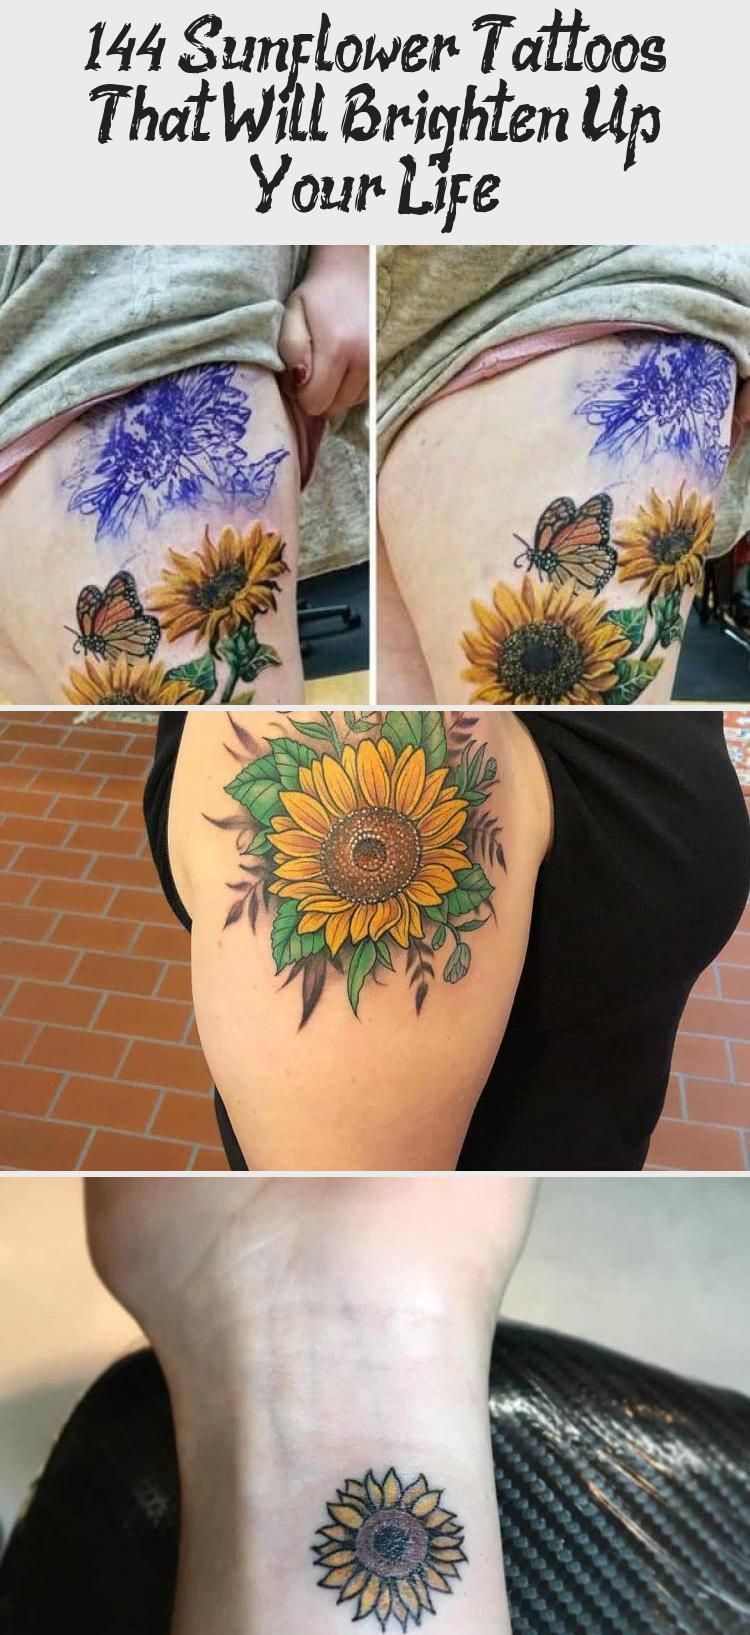 Photo of 144 Sunflower Tattoos That Will Brighten Up Your Life #sunflowertattoosSleeve #T…